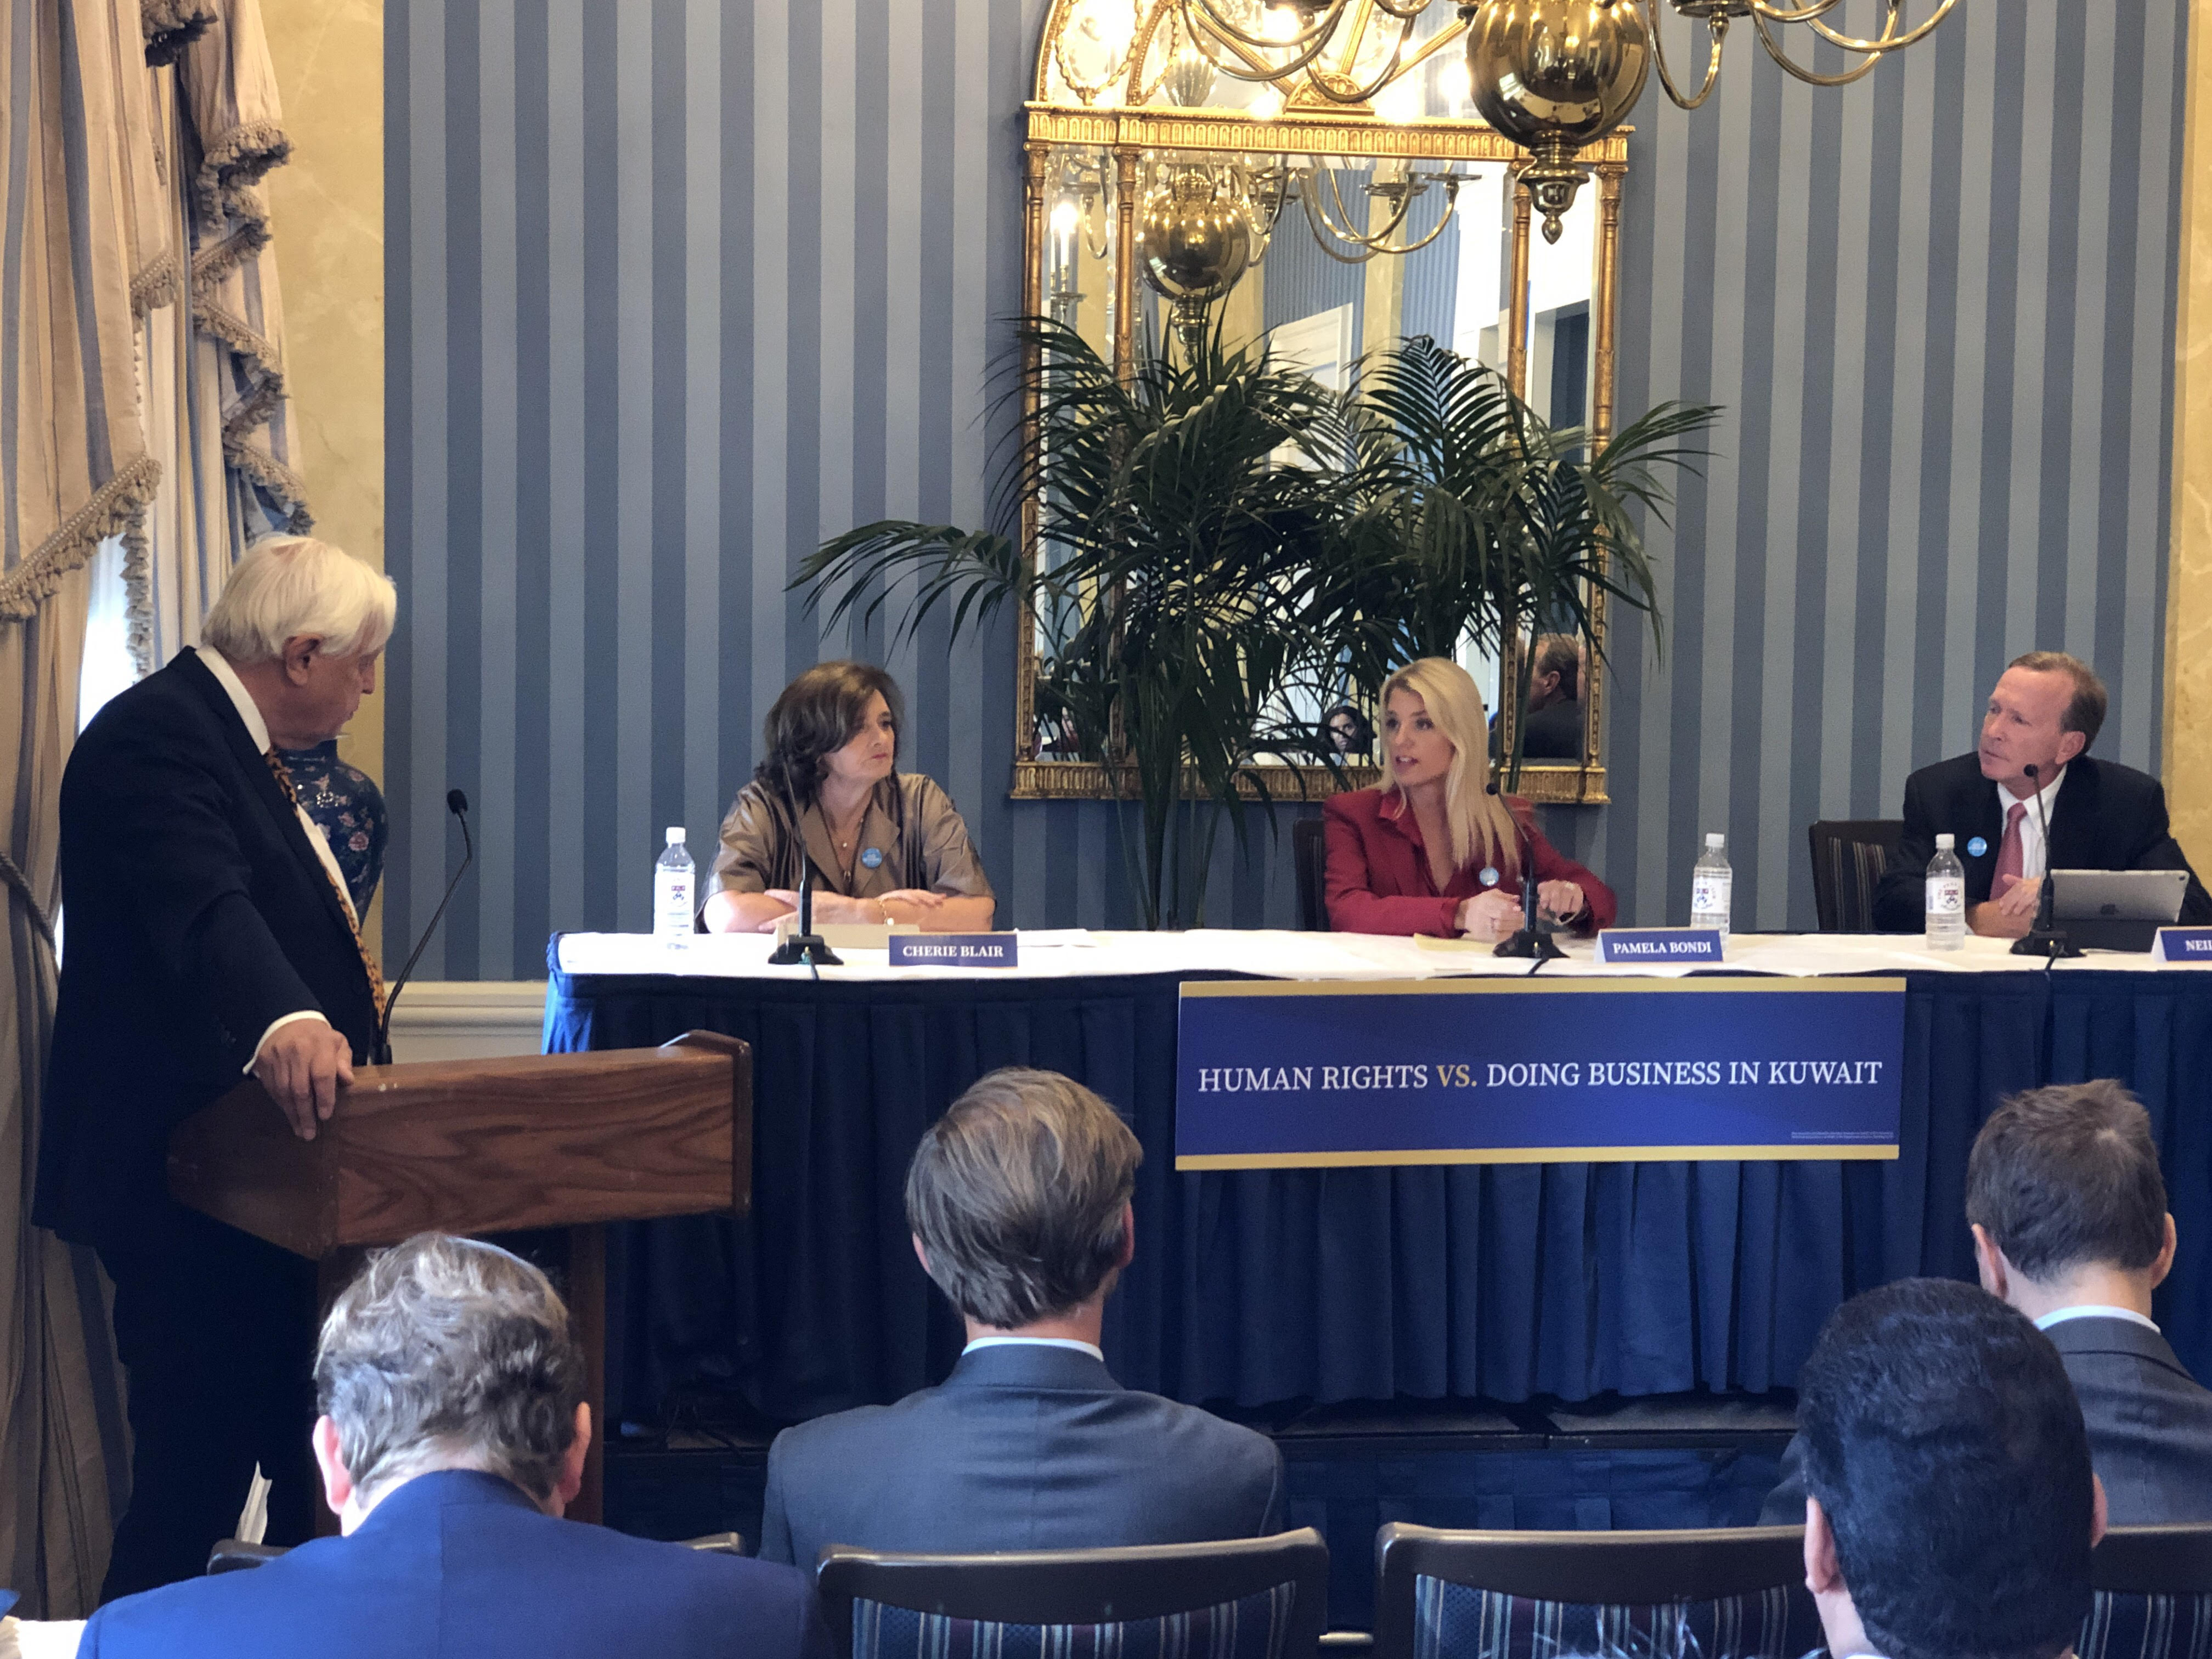 Human rights vs. doing business in Kuwait conference/ The Daily Caller News Foundation